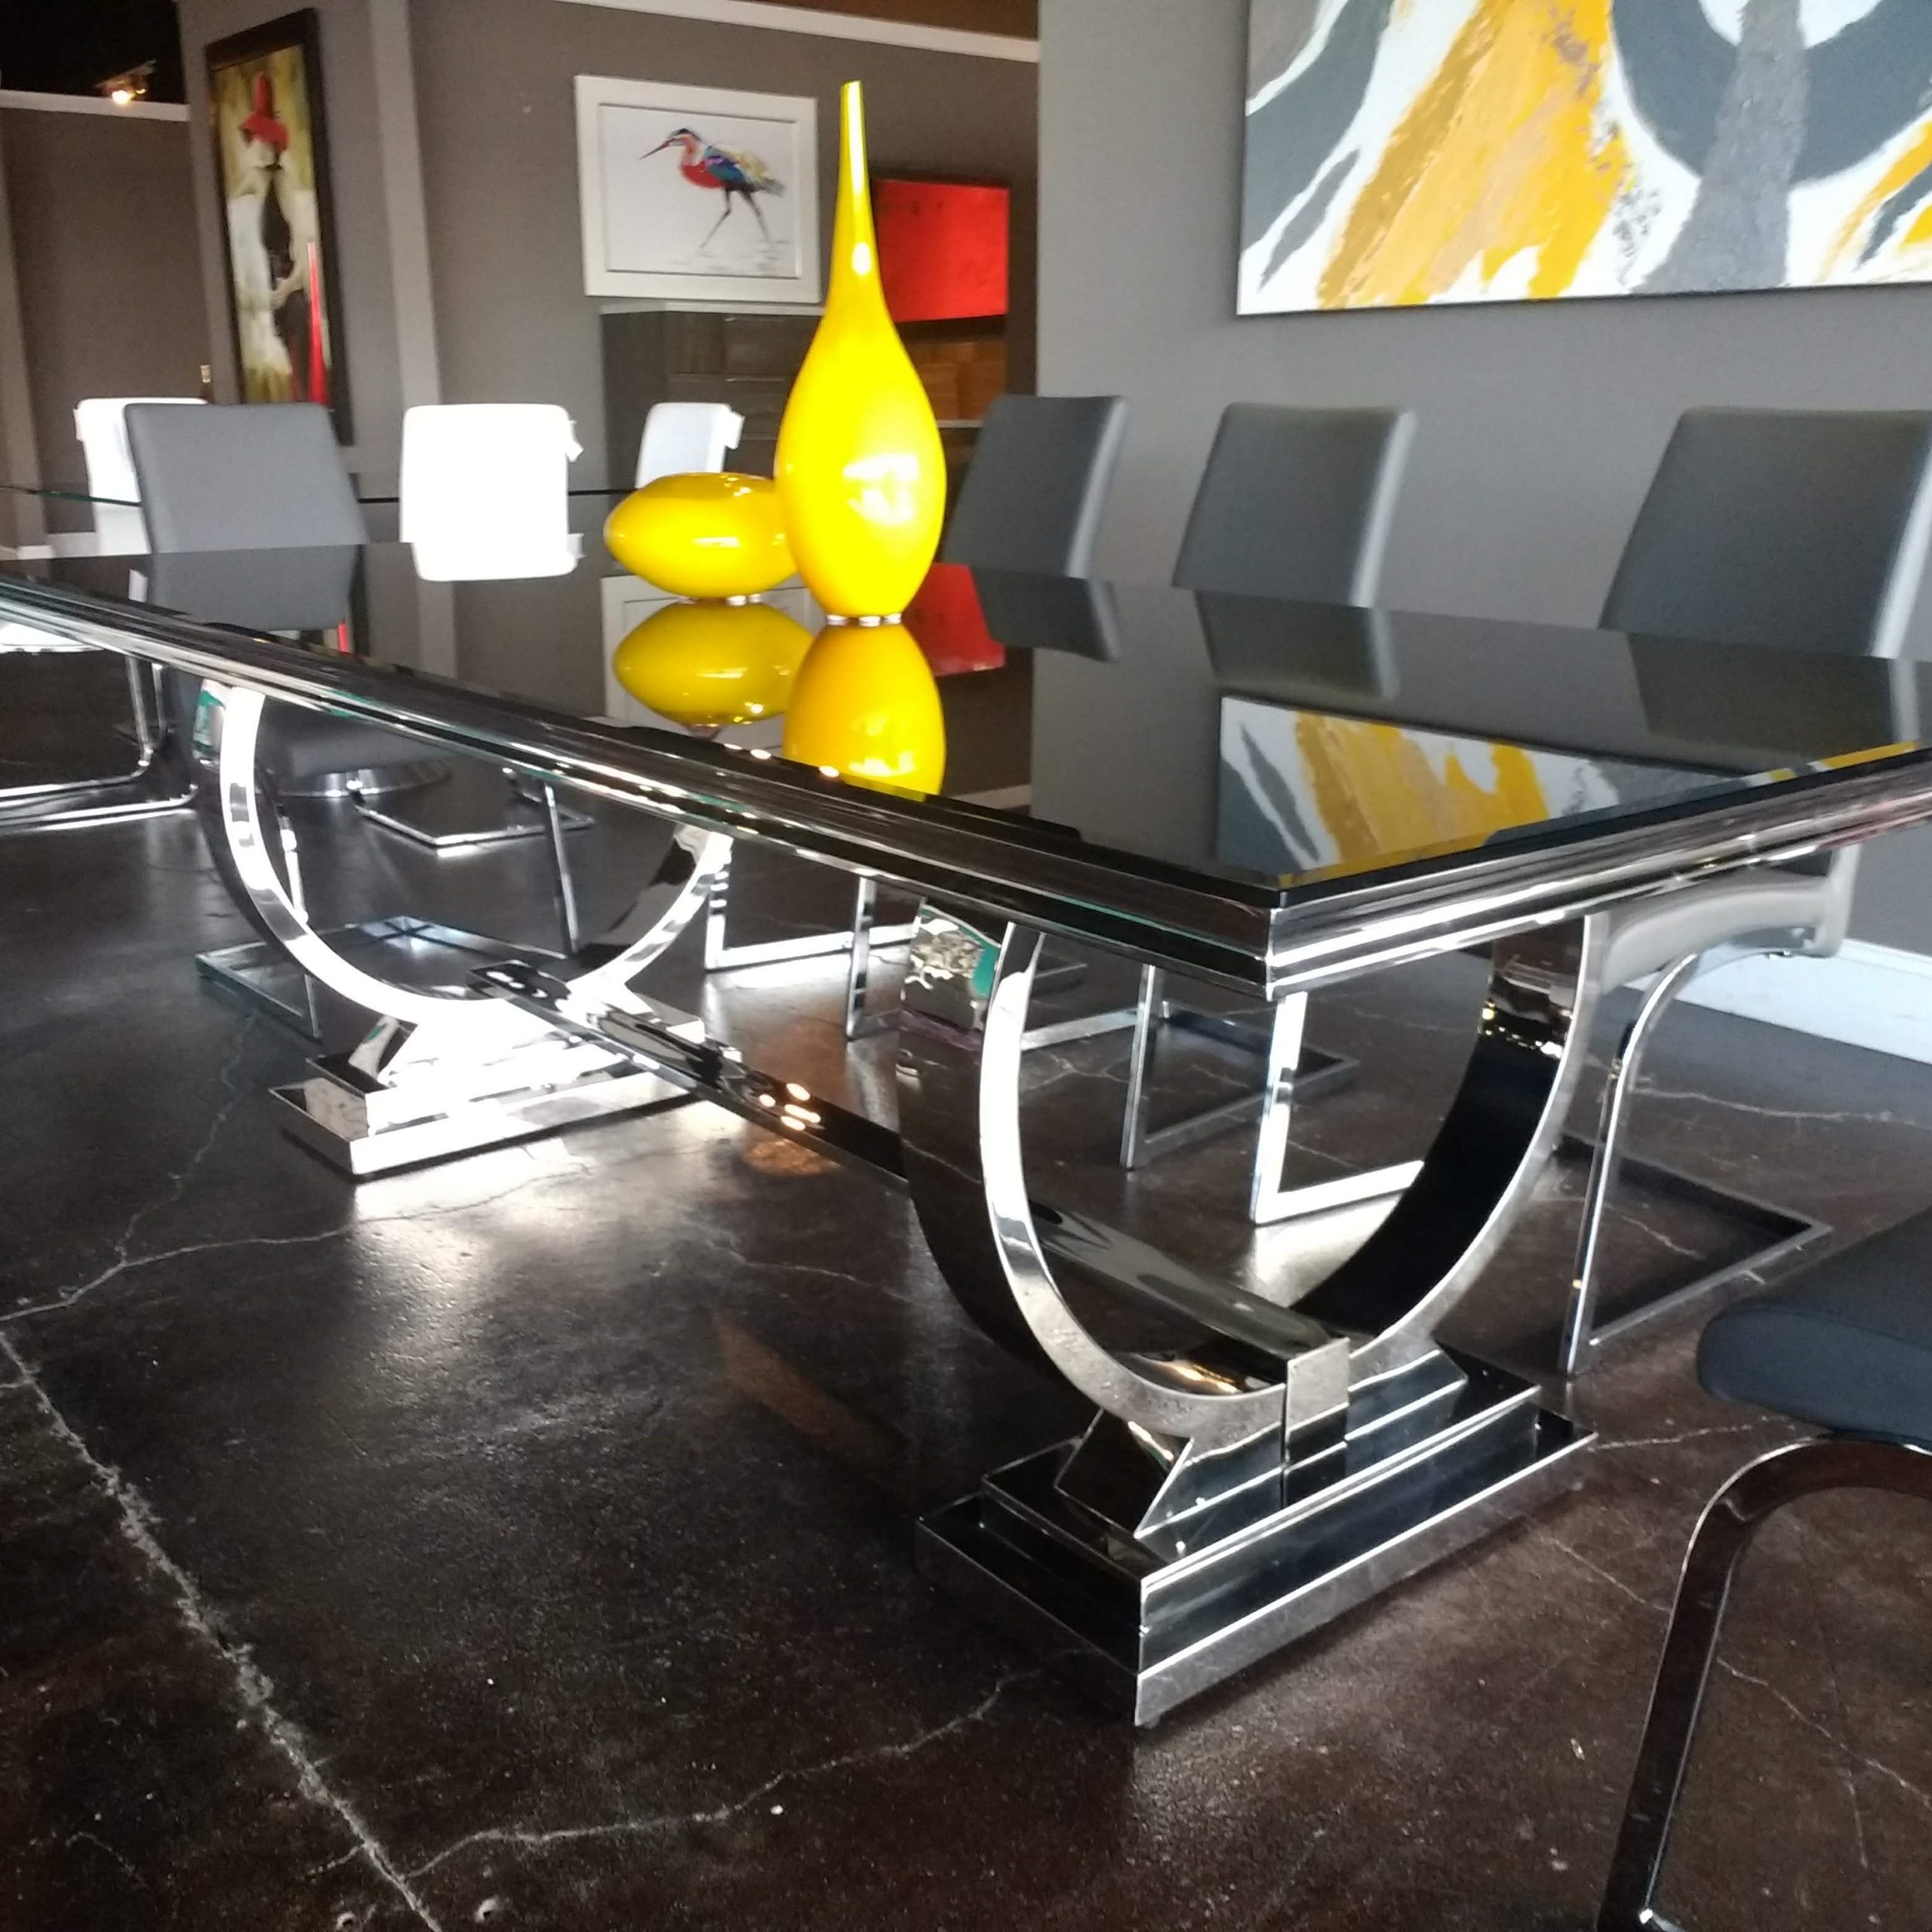 The Large Rectangular Avery Dining Table Has The Ultimate In Recent Avery Rectangular Dining Tables (View 4 of 25)